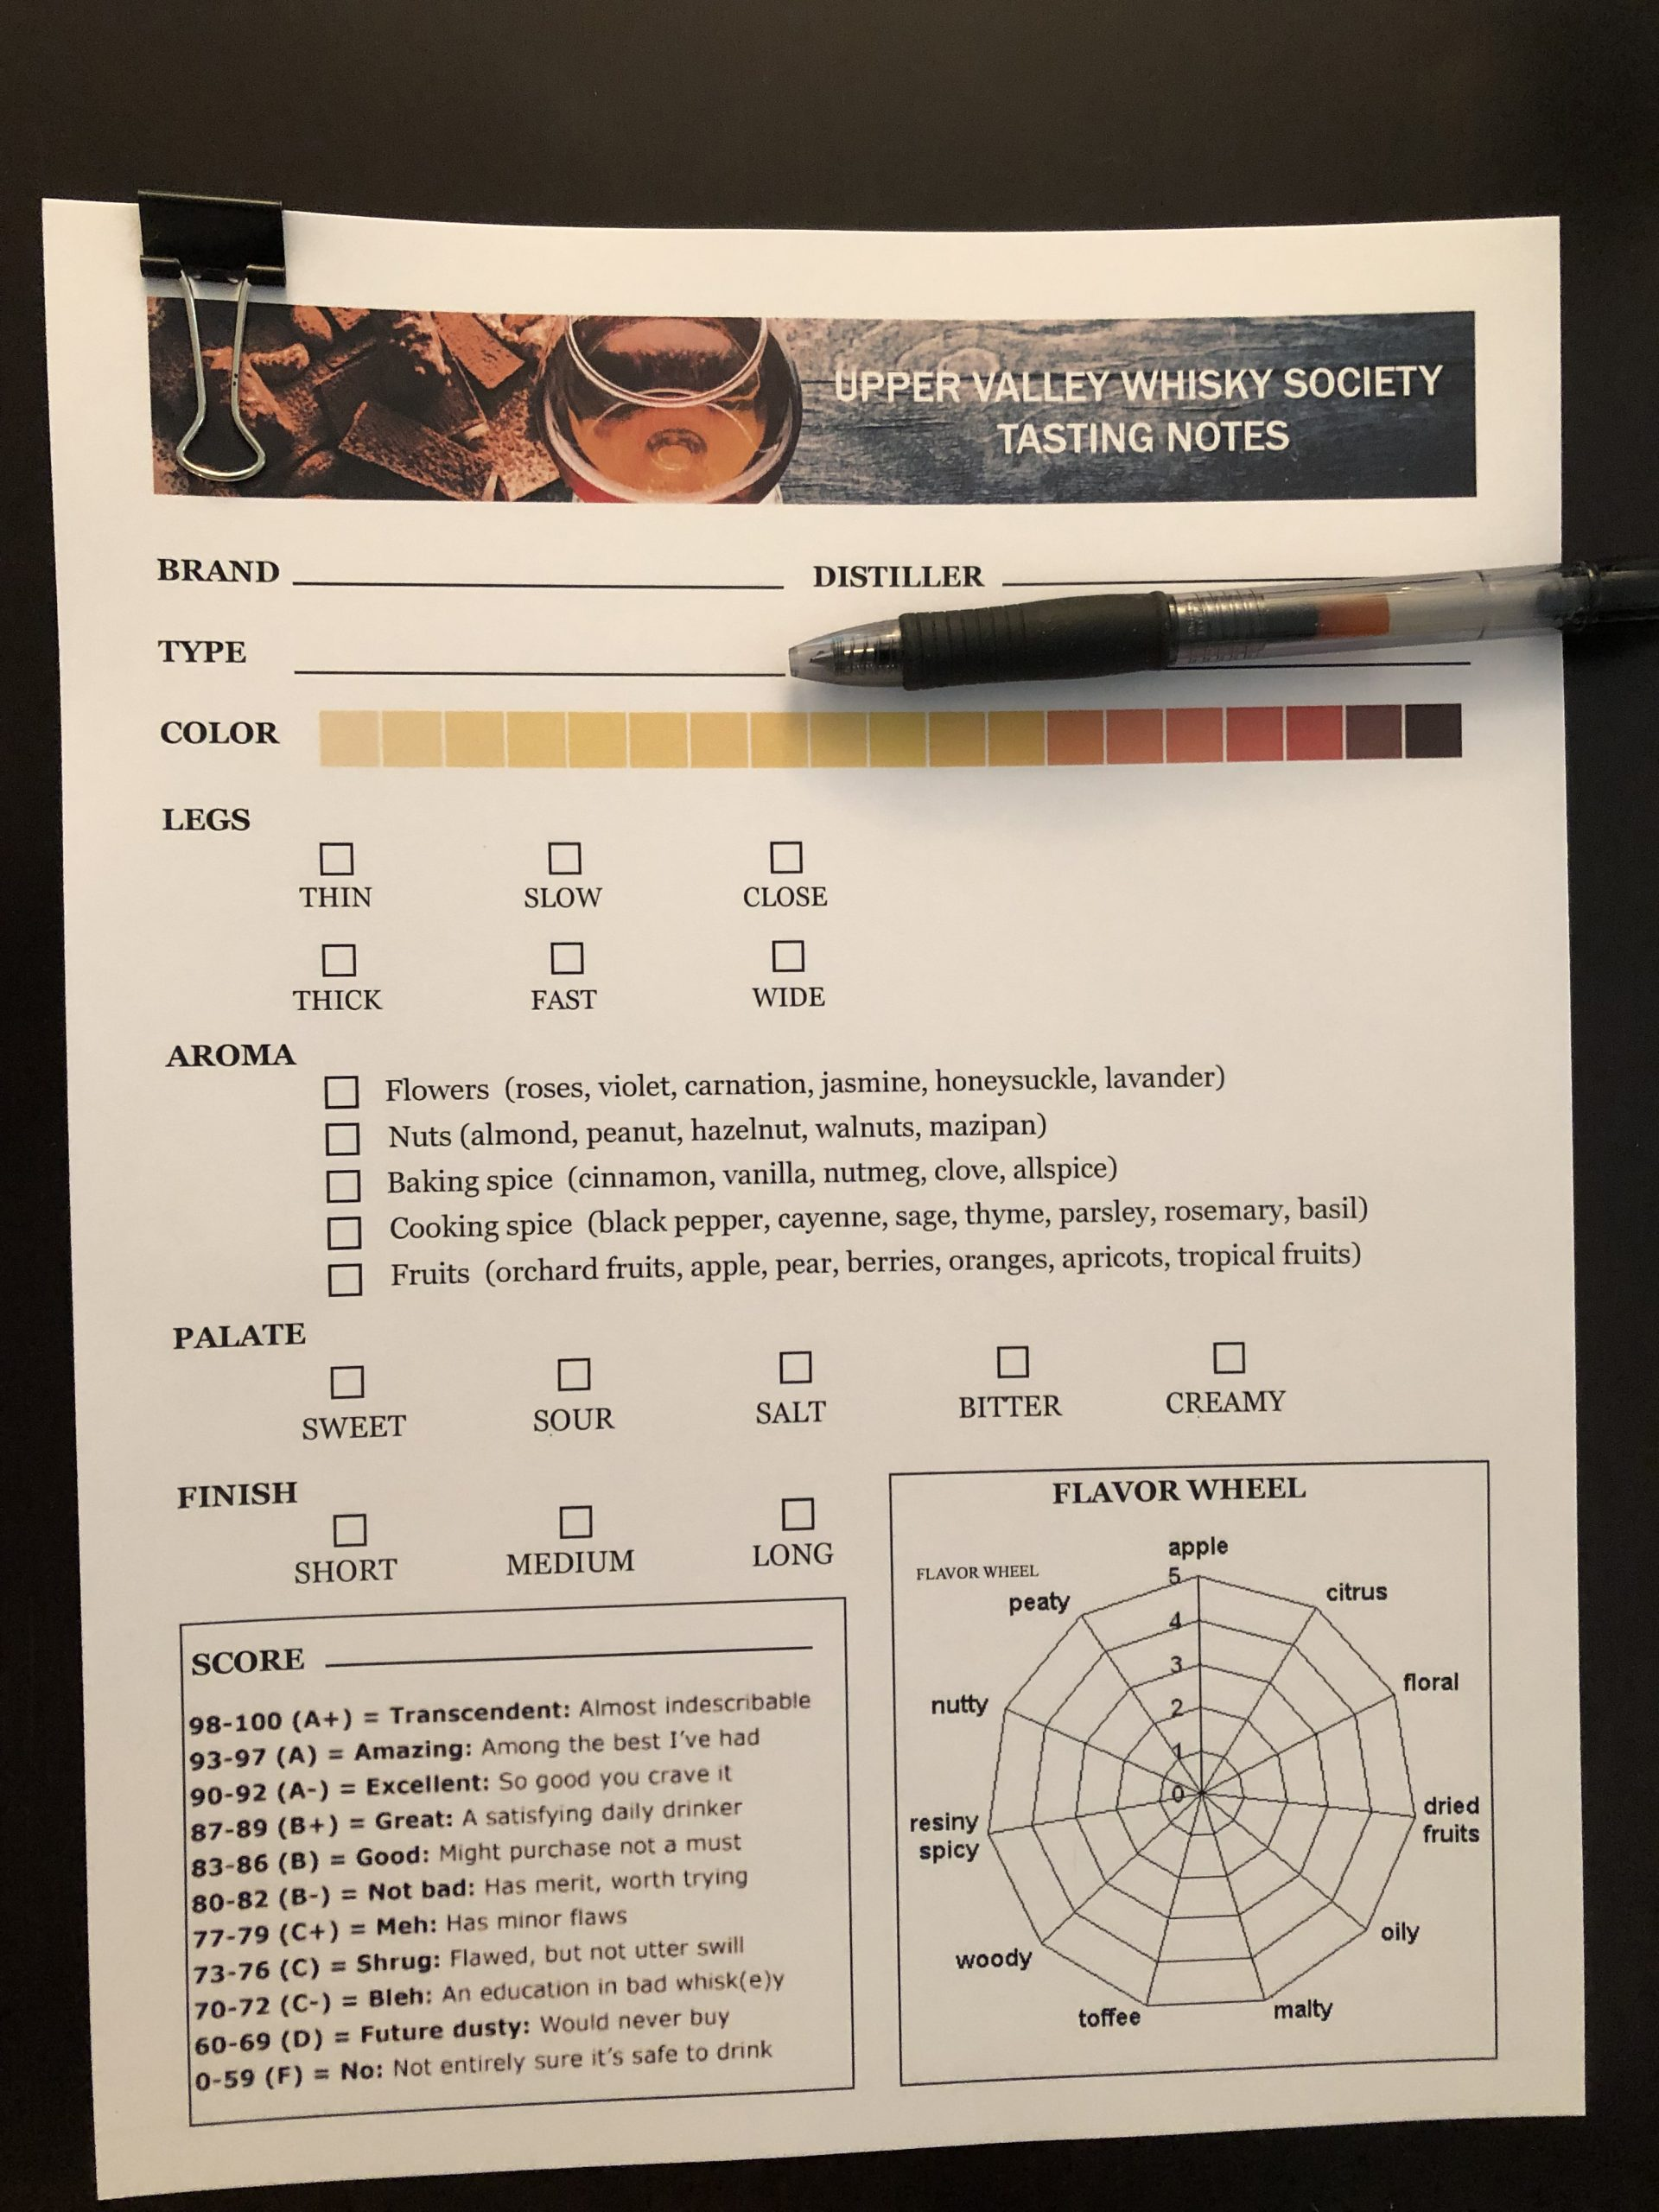 UVWS tasting note page